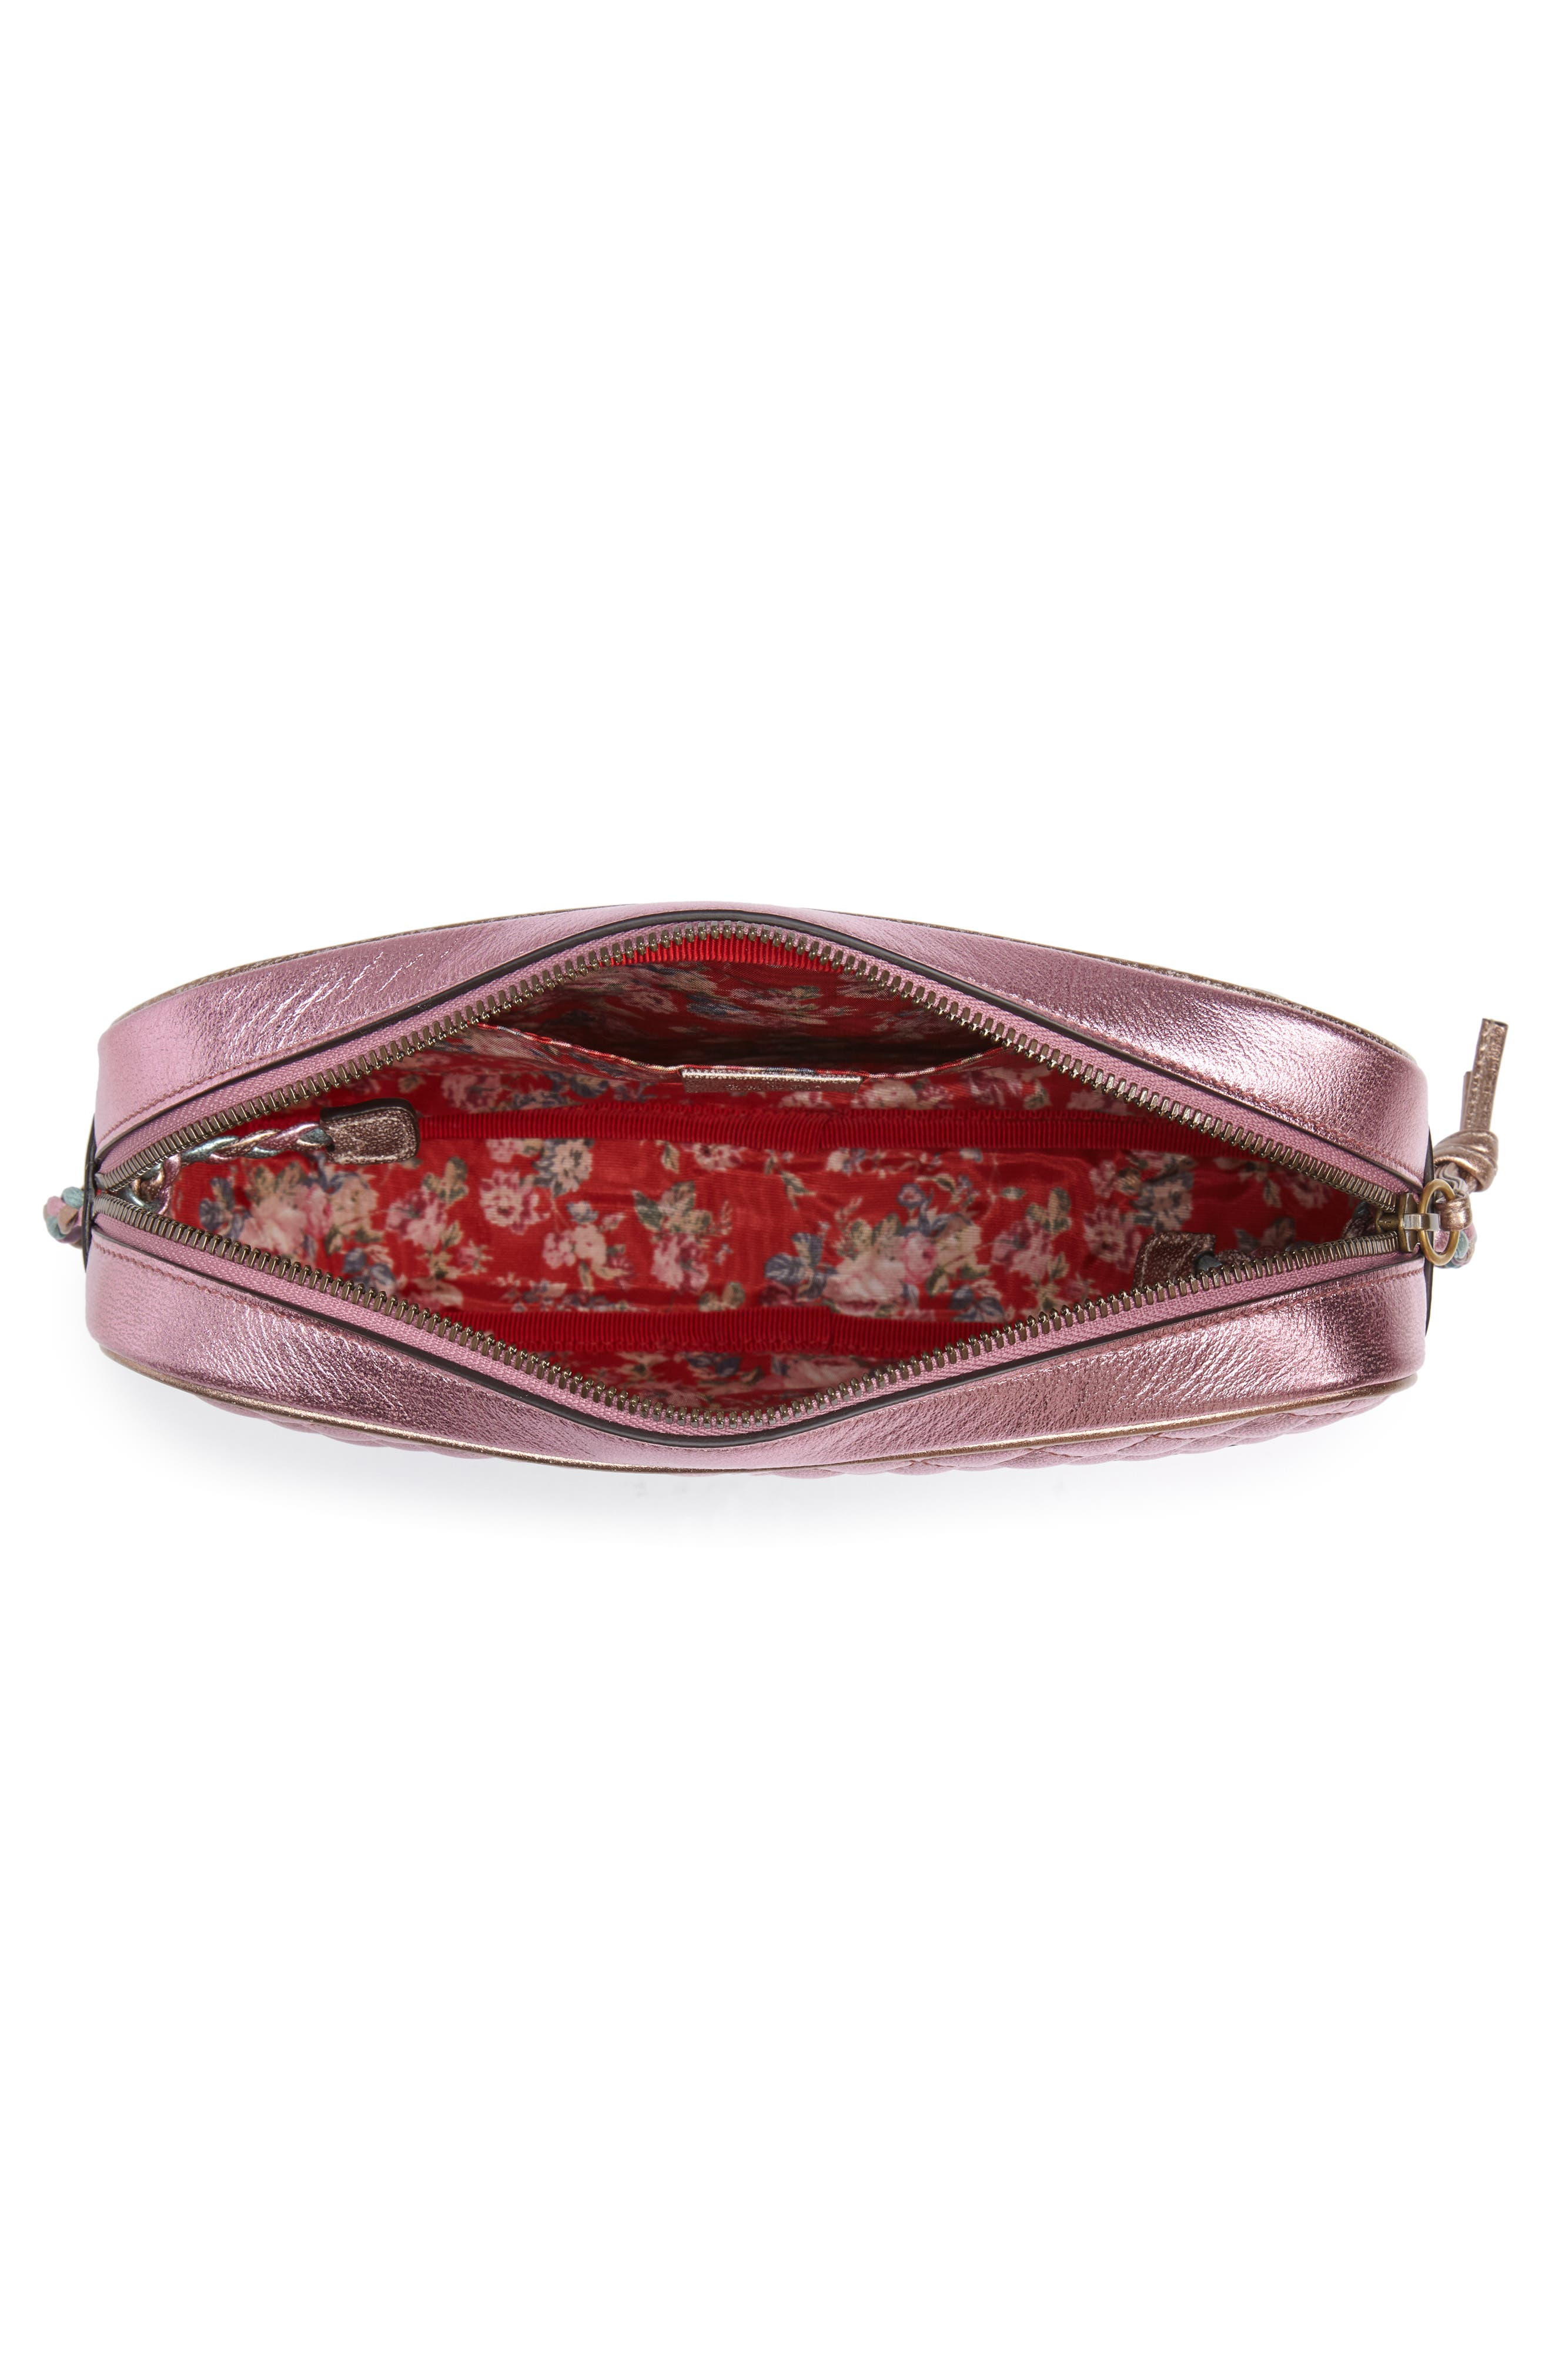 GUCCI, Small Quilted Metallic Leather Shoulder Bag, Alternate thumbnail 4, color, ROSE/ BLUE